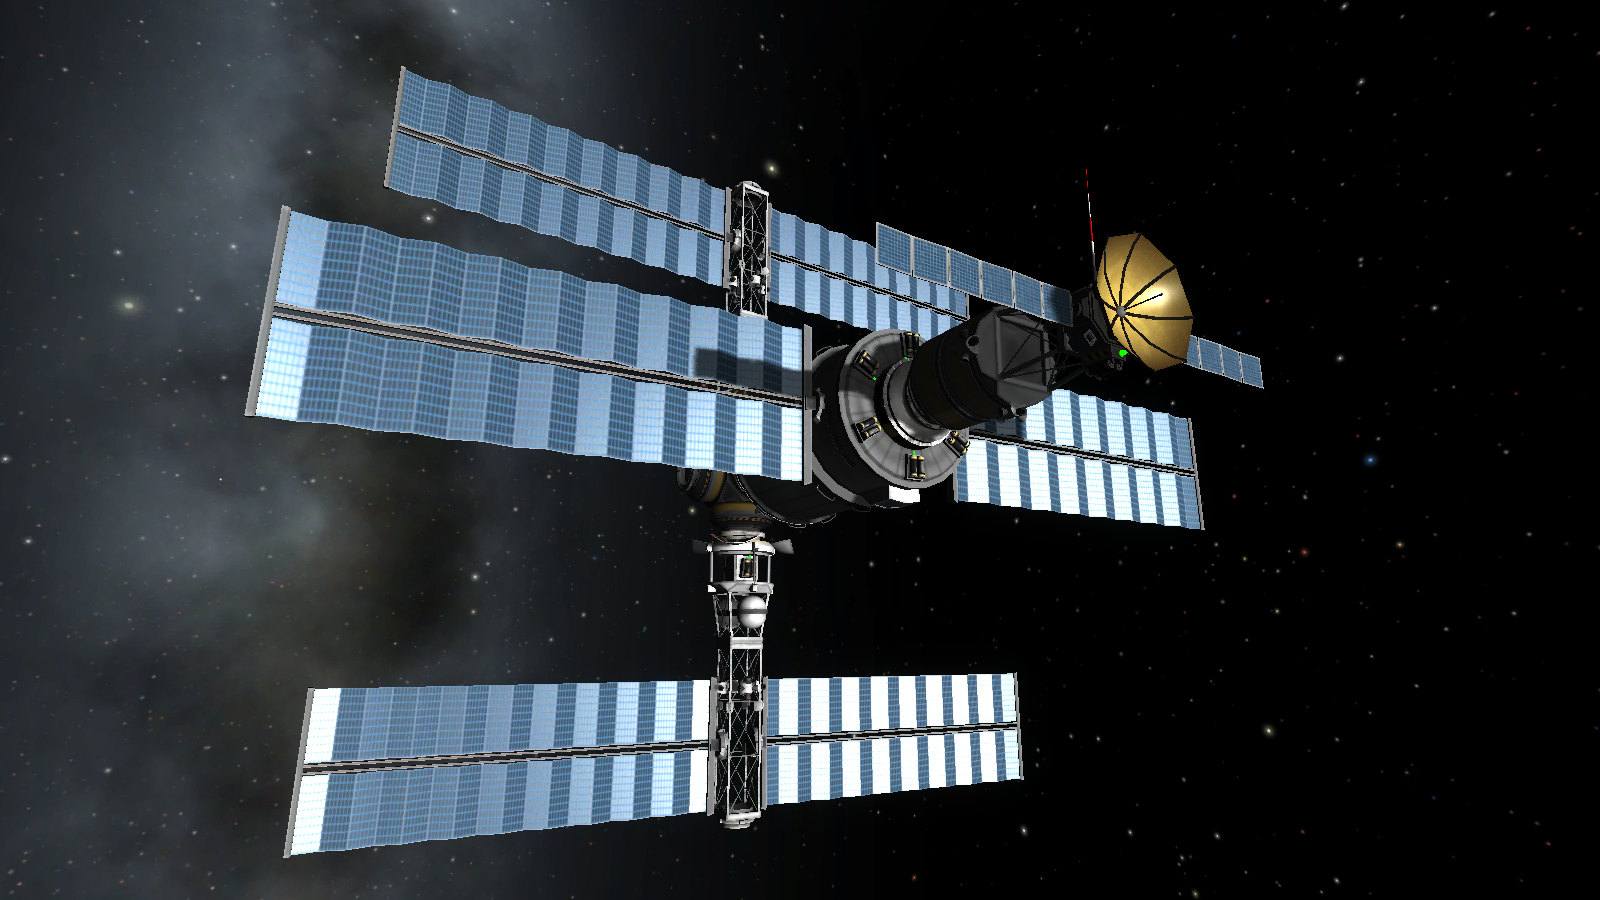 Kerbal Space Program Blog: Space Station Basics: KSP 0.18 ...